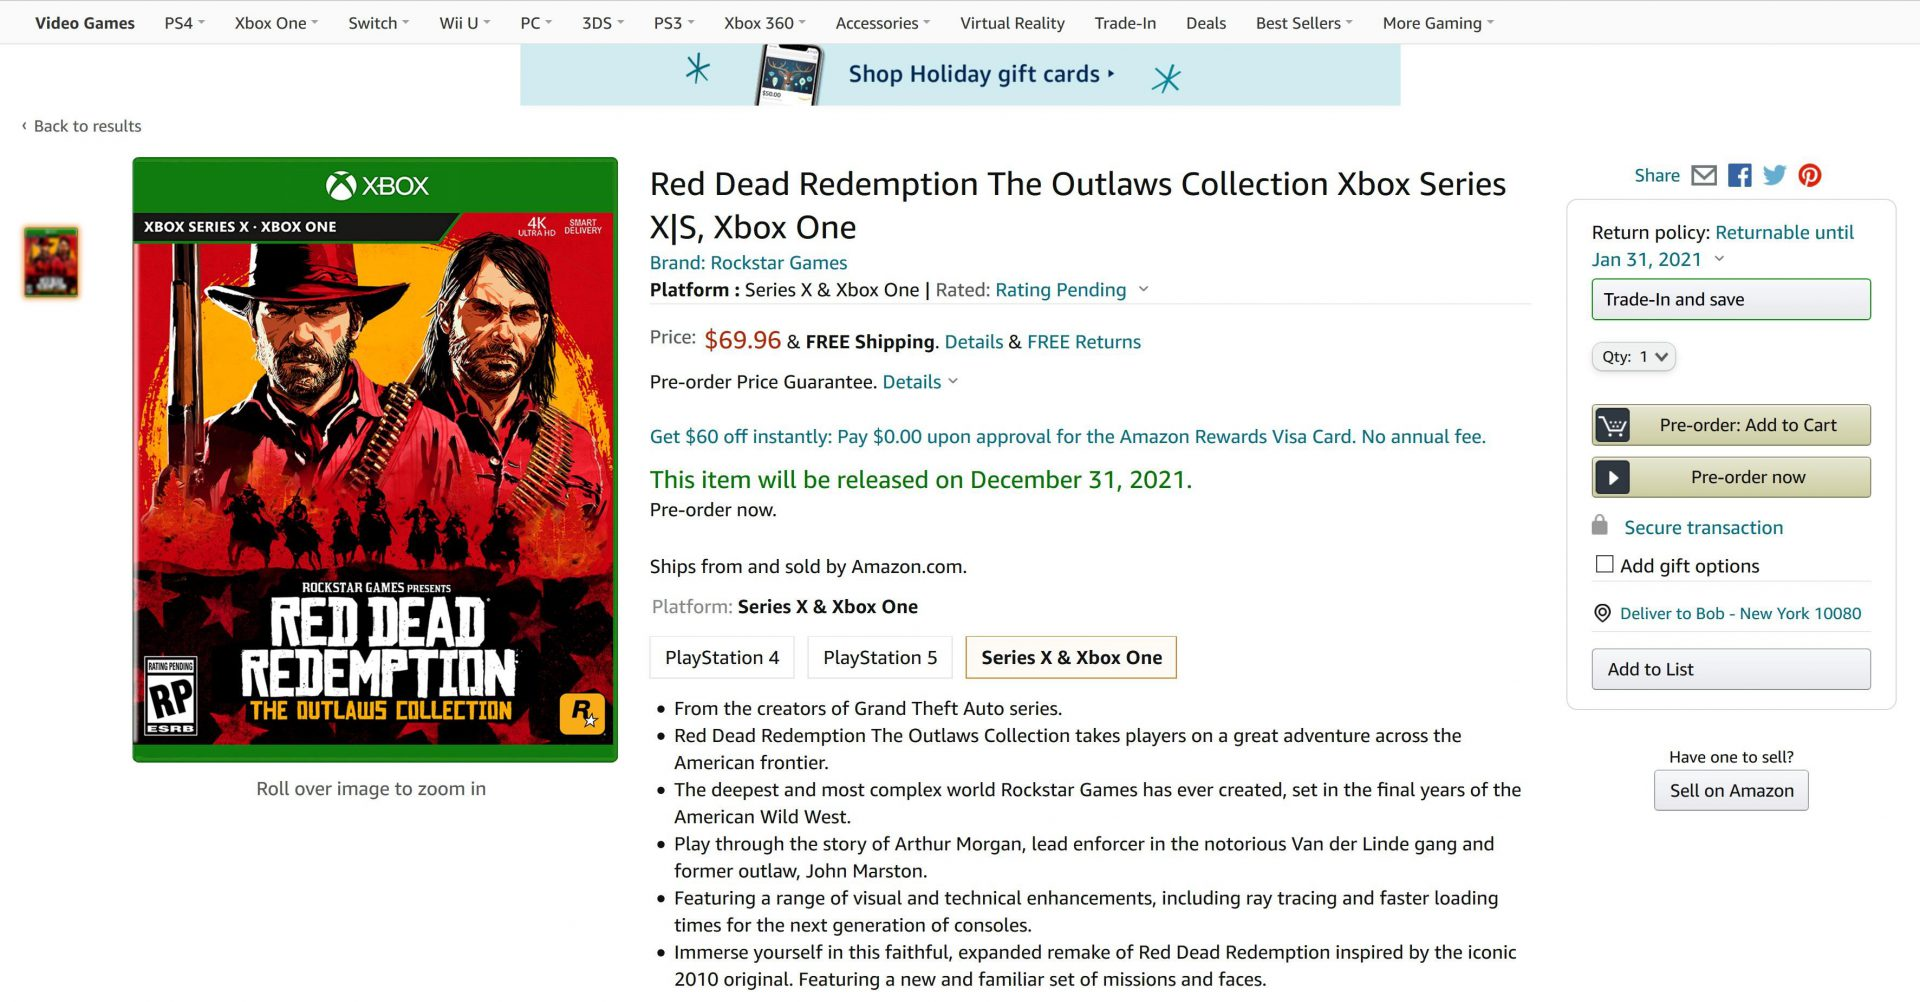 Red Dead Redemption The Outlaws Collection